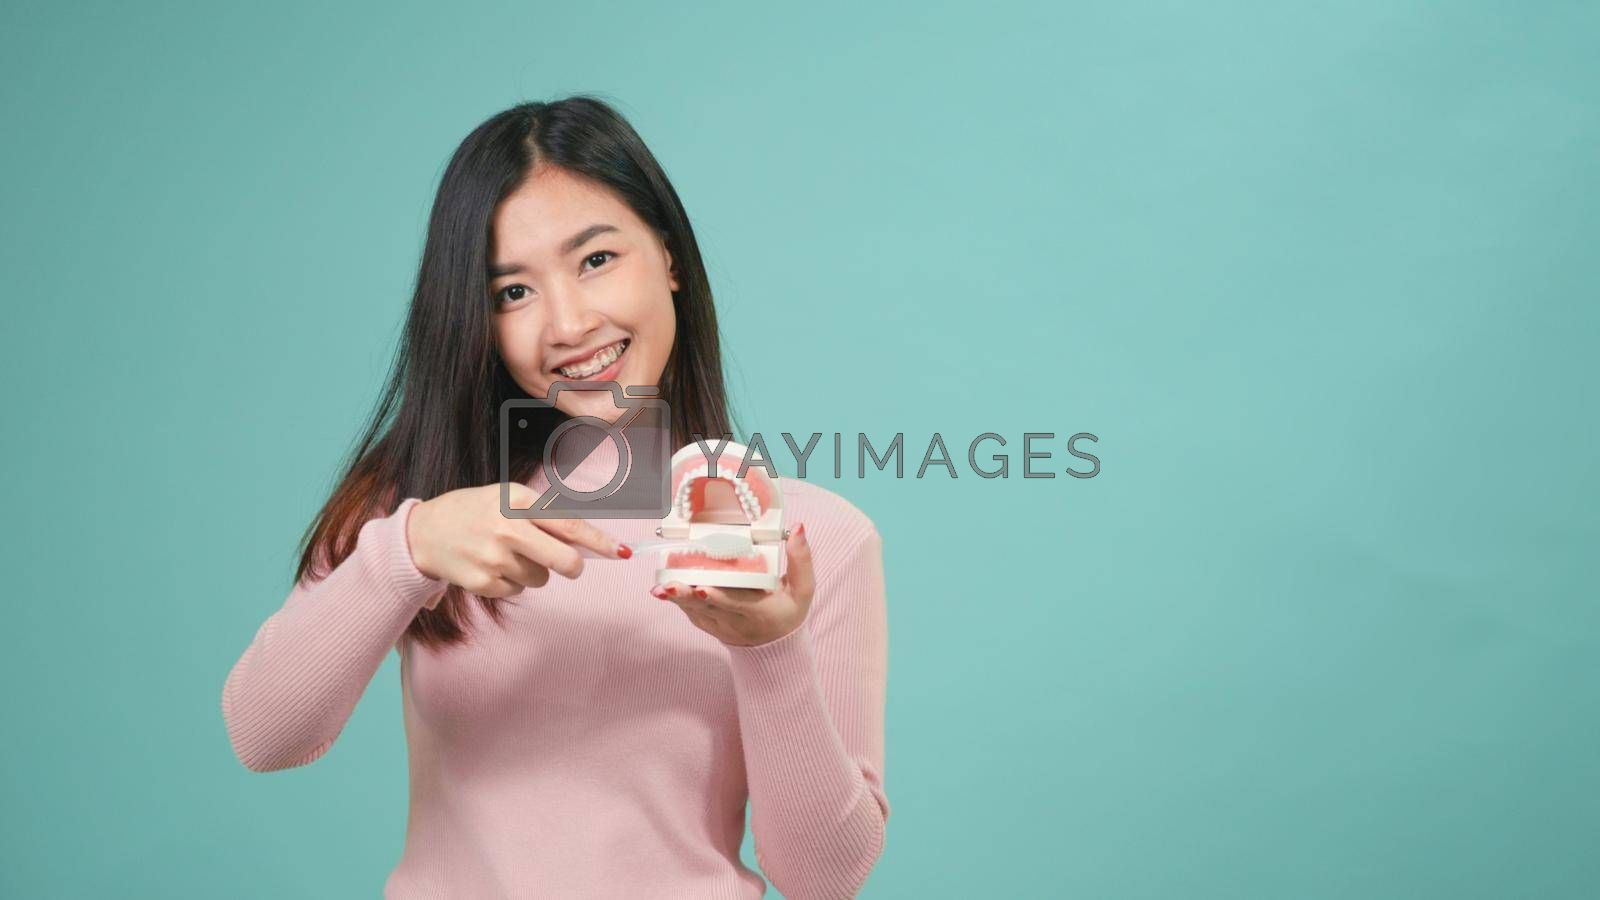 Asian young beautiful woman smile showing model how to clean the teeth with toothbrush properly and right, Female brush white teeth model isolated on blue background, dental hygiene and health concept